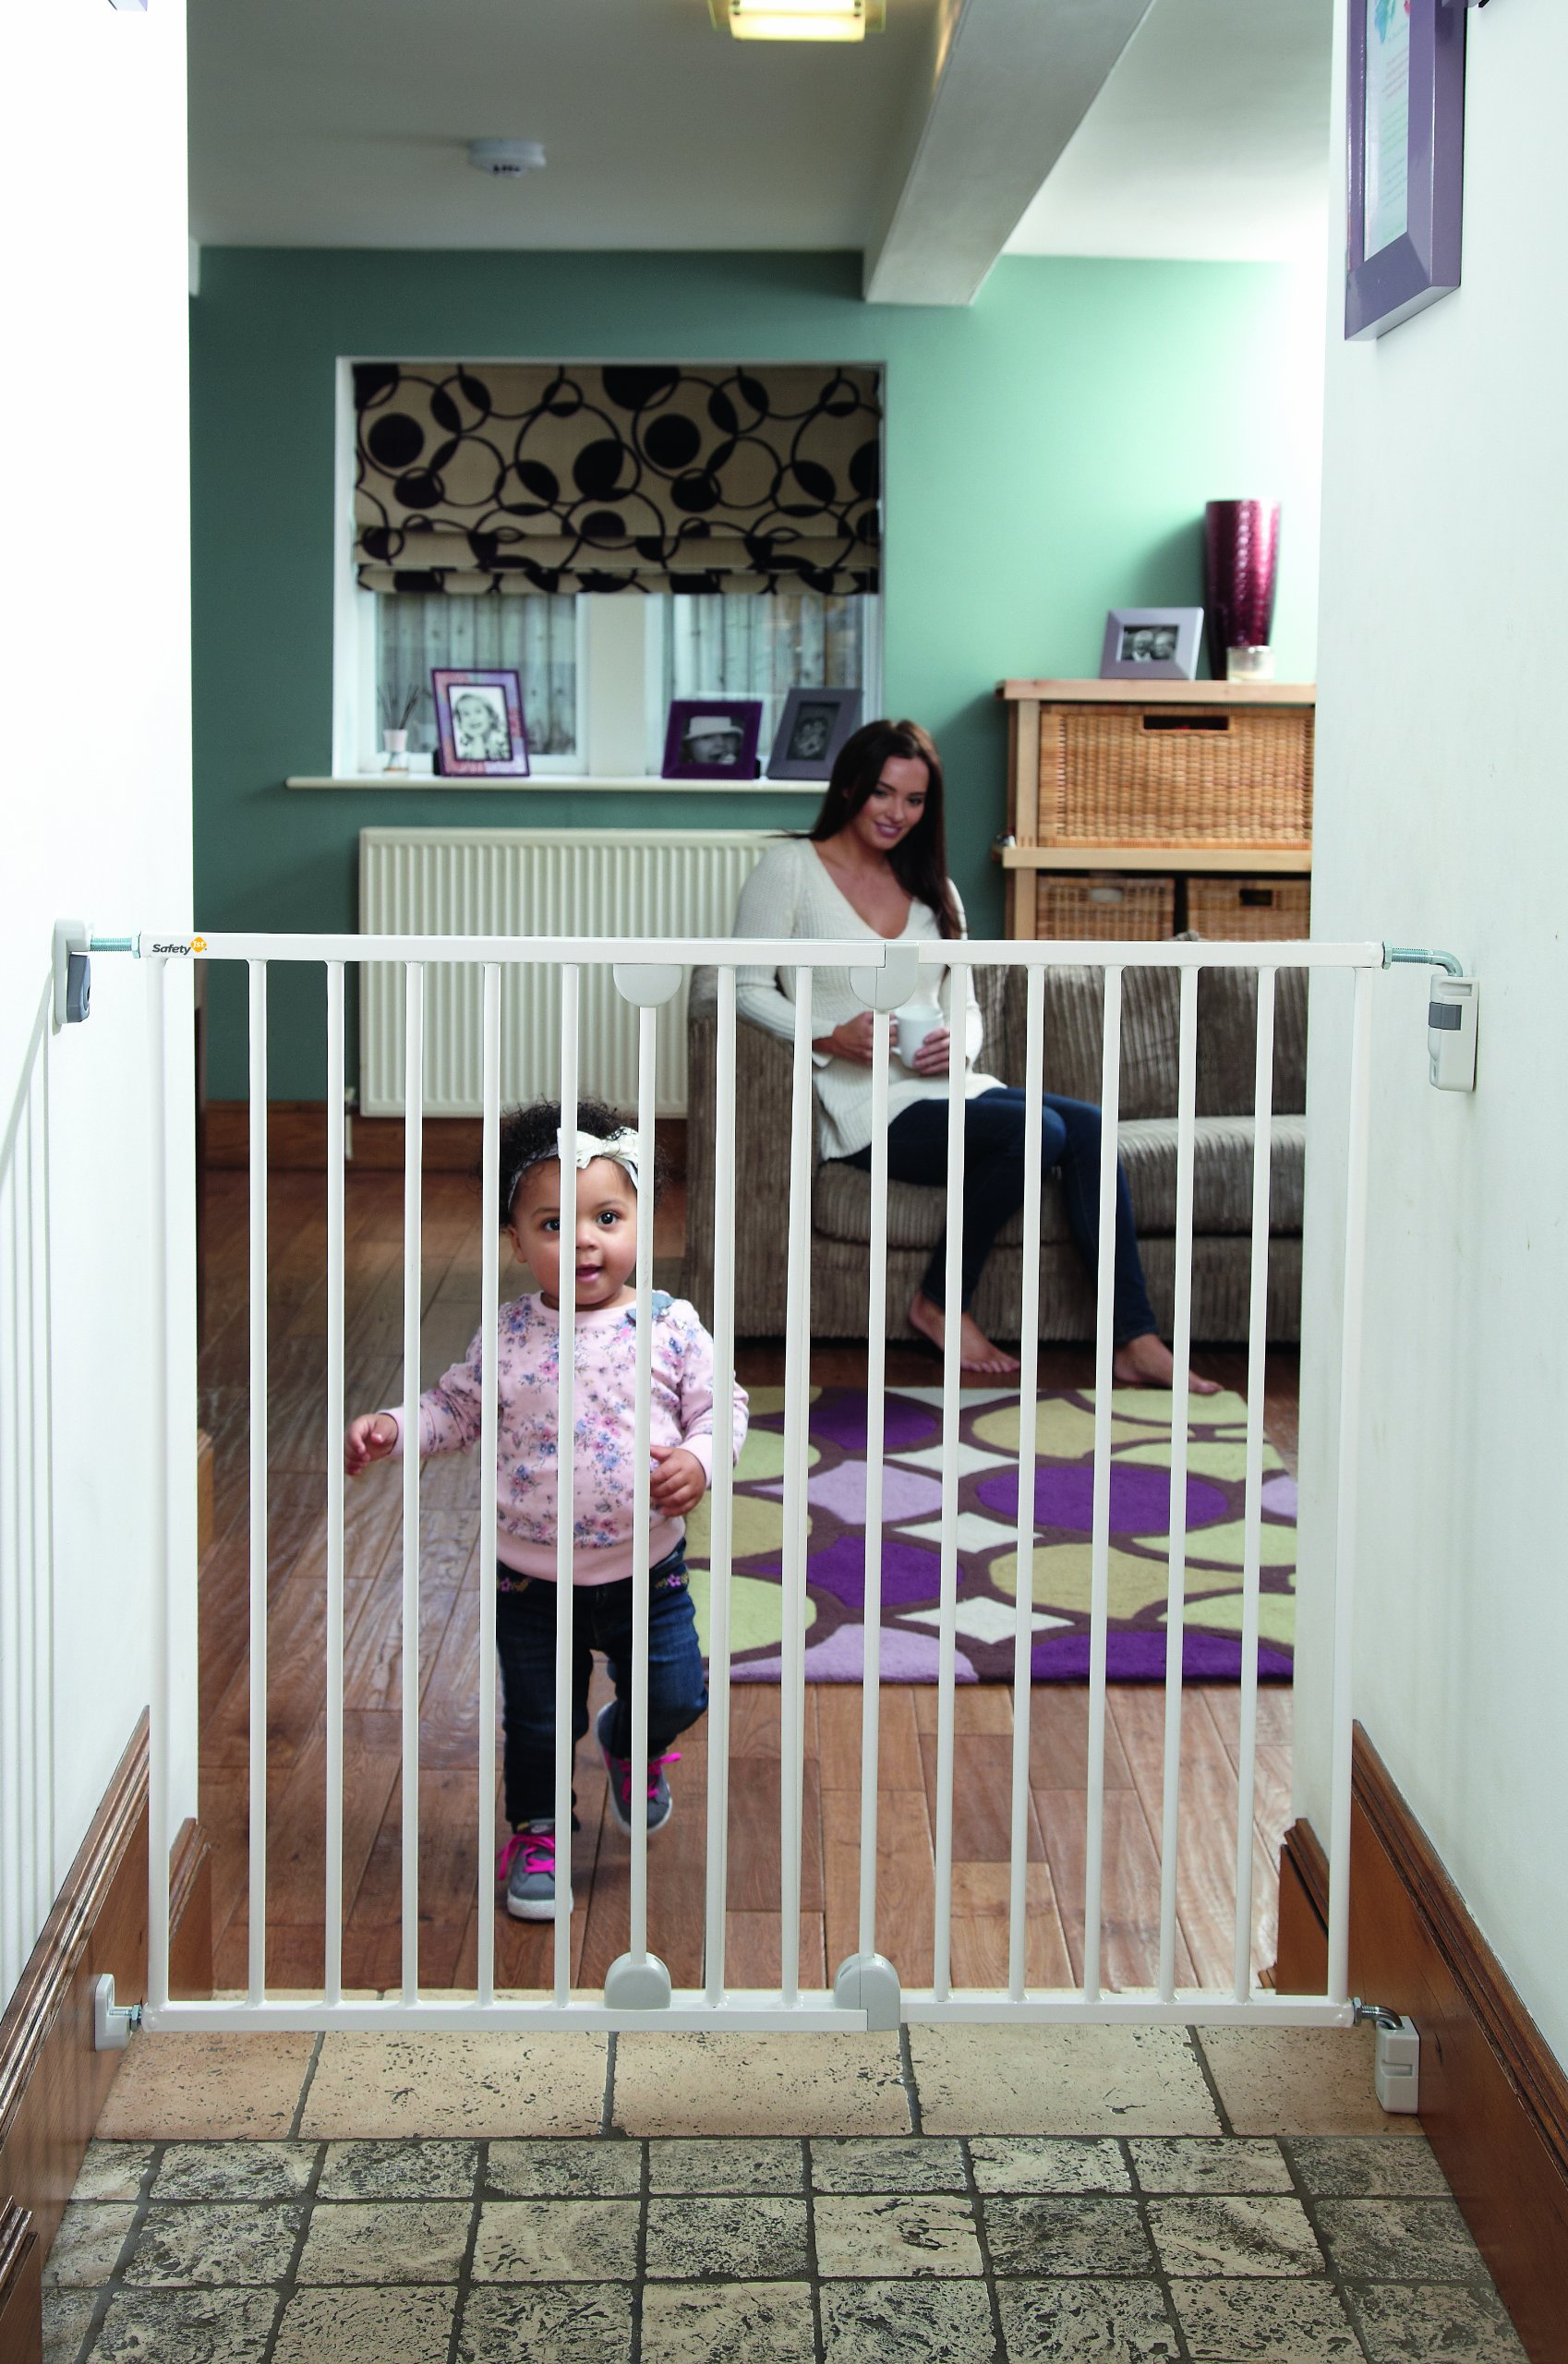 Safety 1st Wall Fix Extending Wide Safety Metal Gate, Ideal for Kids and Pets, 62 to 102 cm, White